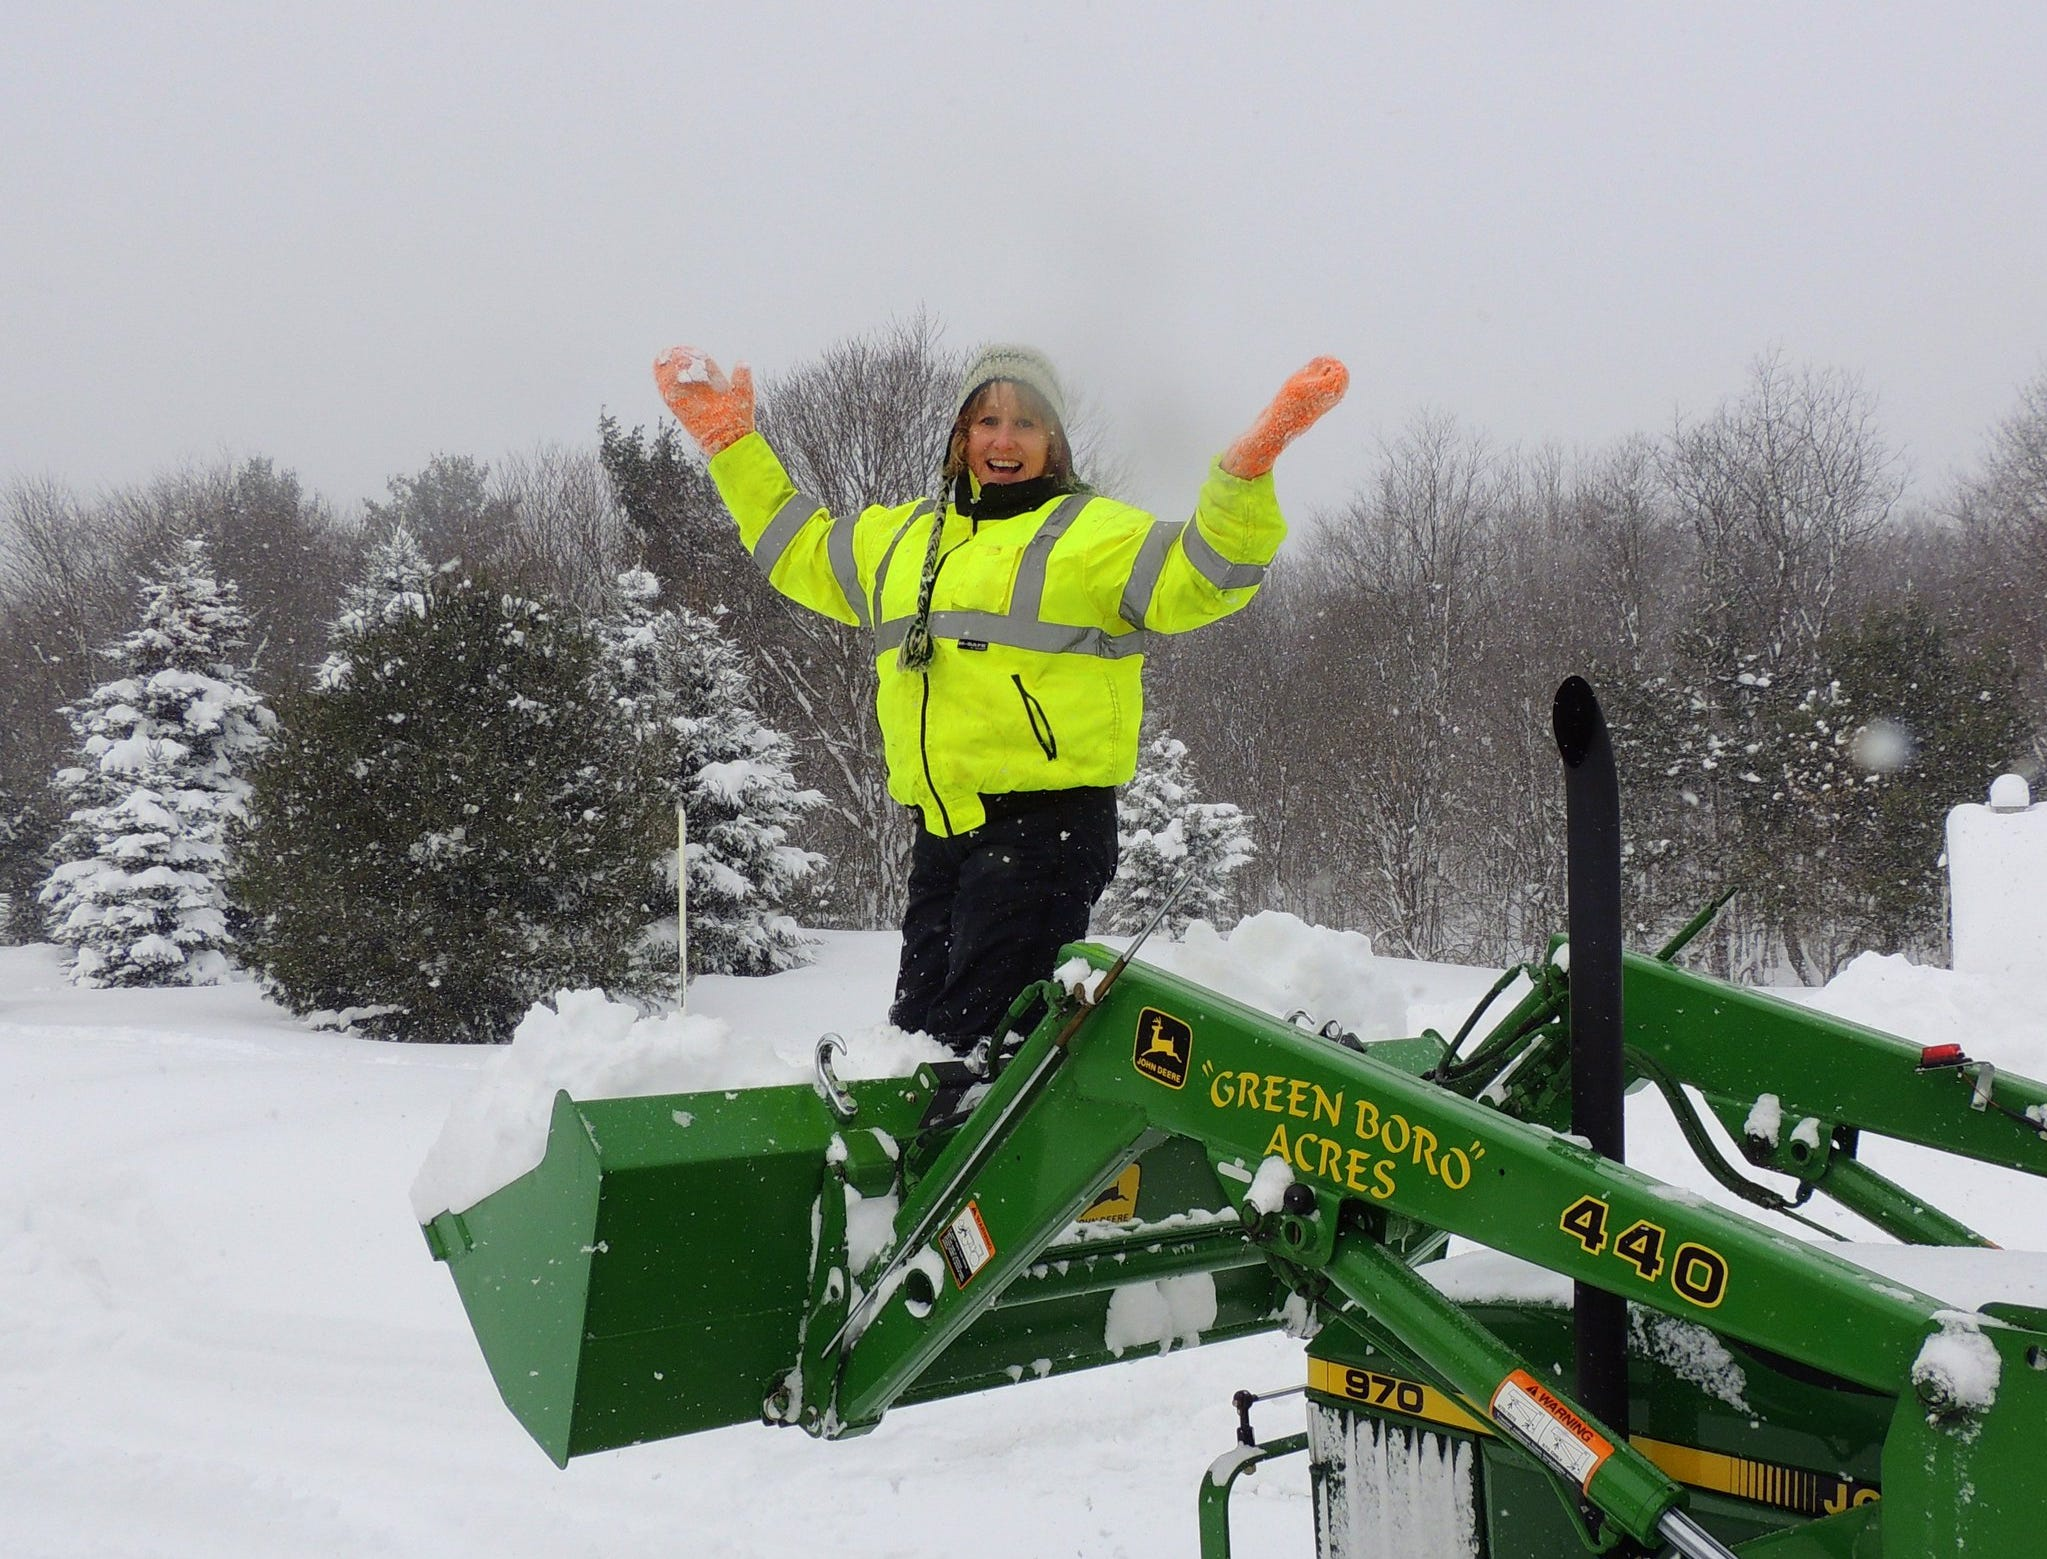 Rochester area dodged significant snow, but more is on the way